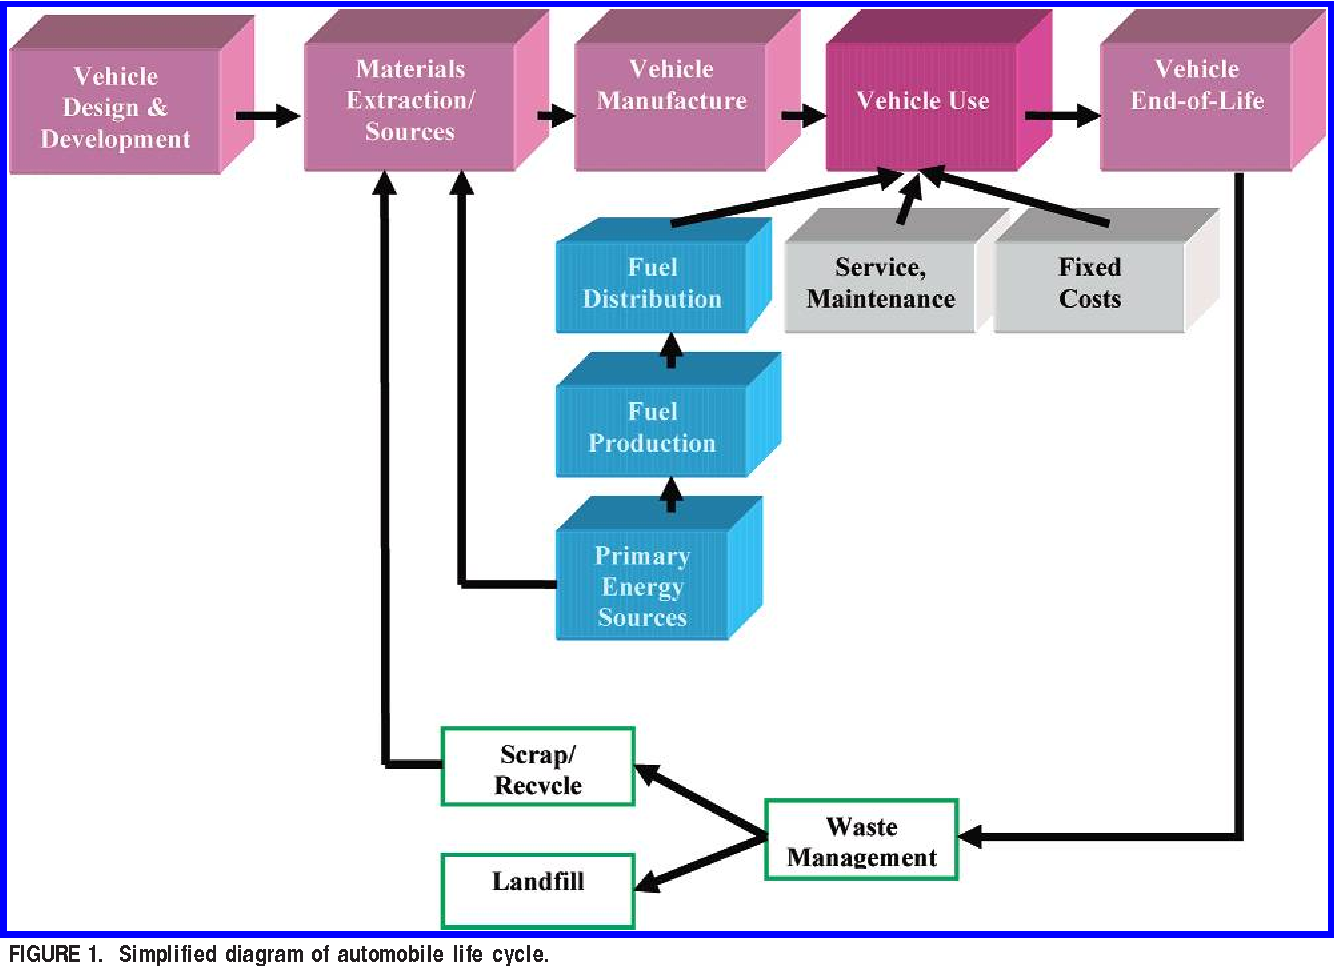 Life cycle assessment of automobile/fuel options  - Semantic